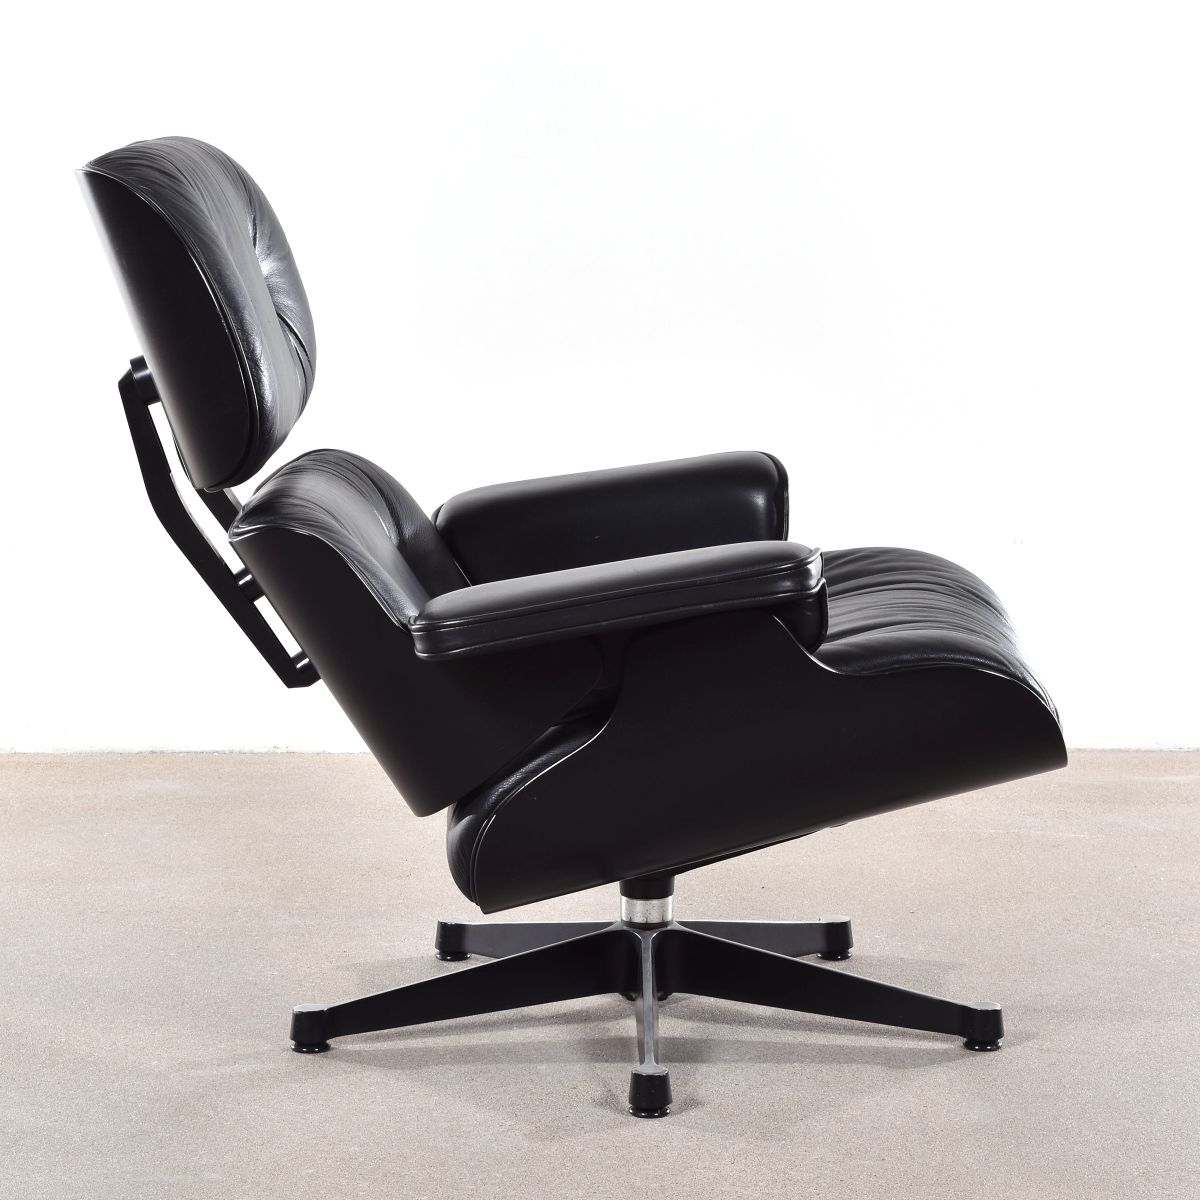 german lounge chair by charles ray eames for vitra 1988. Black Bedroom Furniture Sets. Home Design Ideas